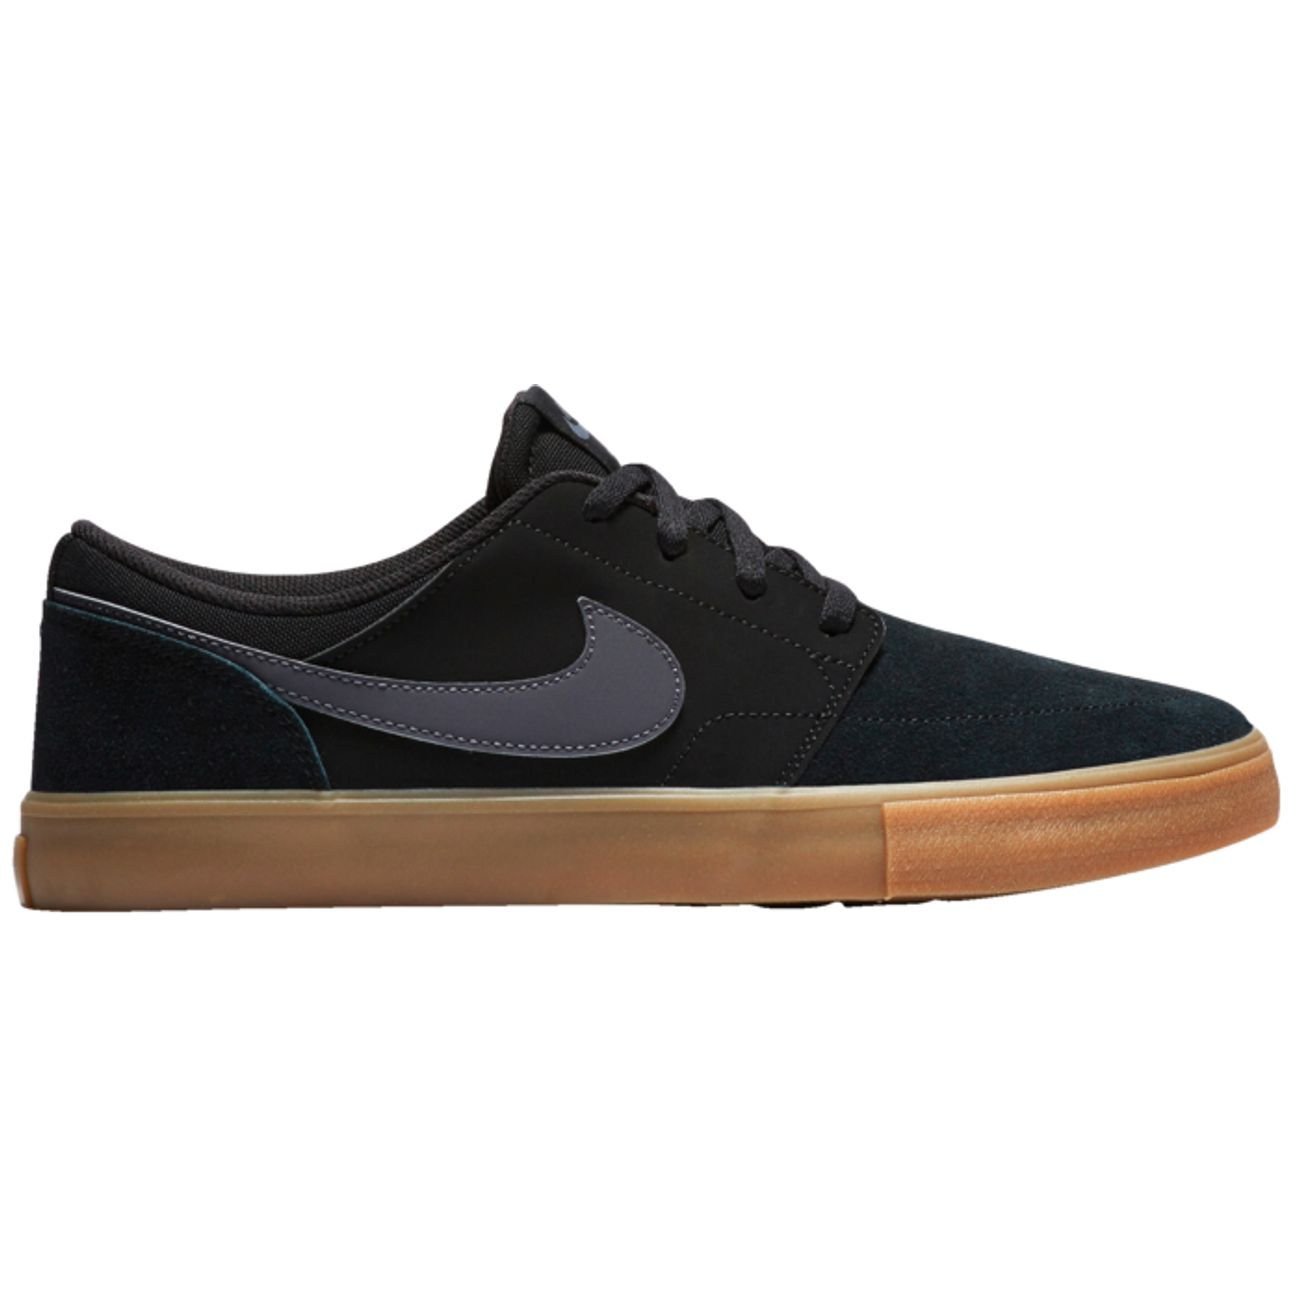 CHAUSSURES BASSES Loisirs homme NIKE SB PORTMORE II SOLAR